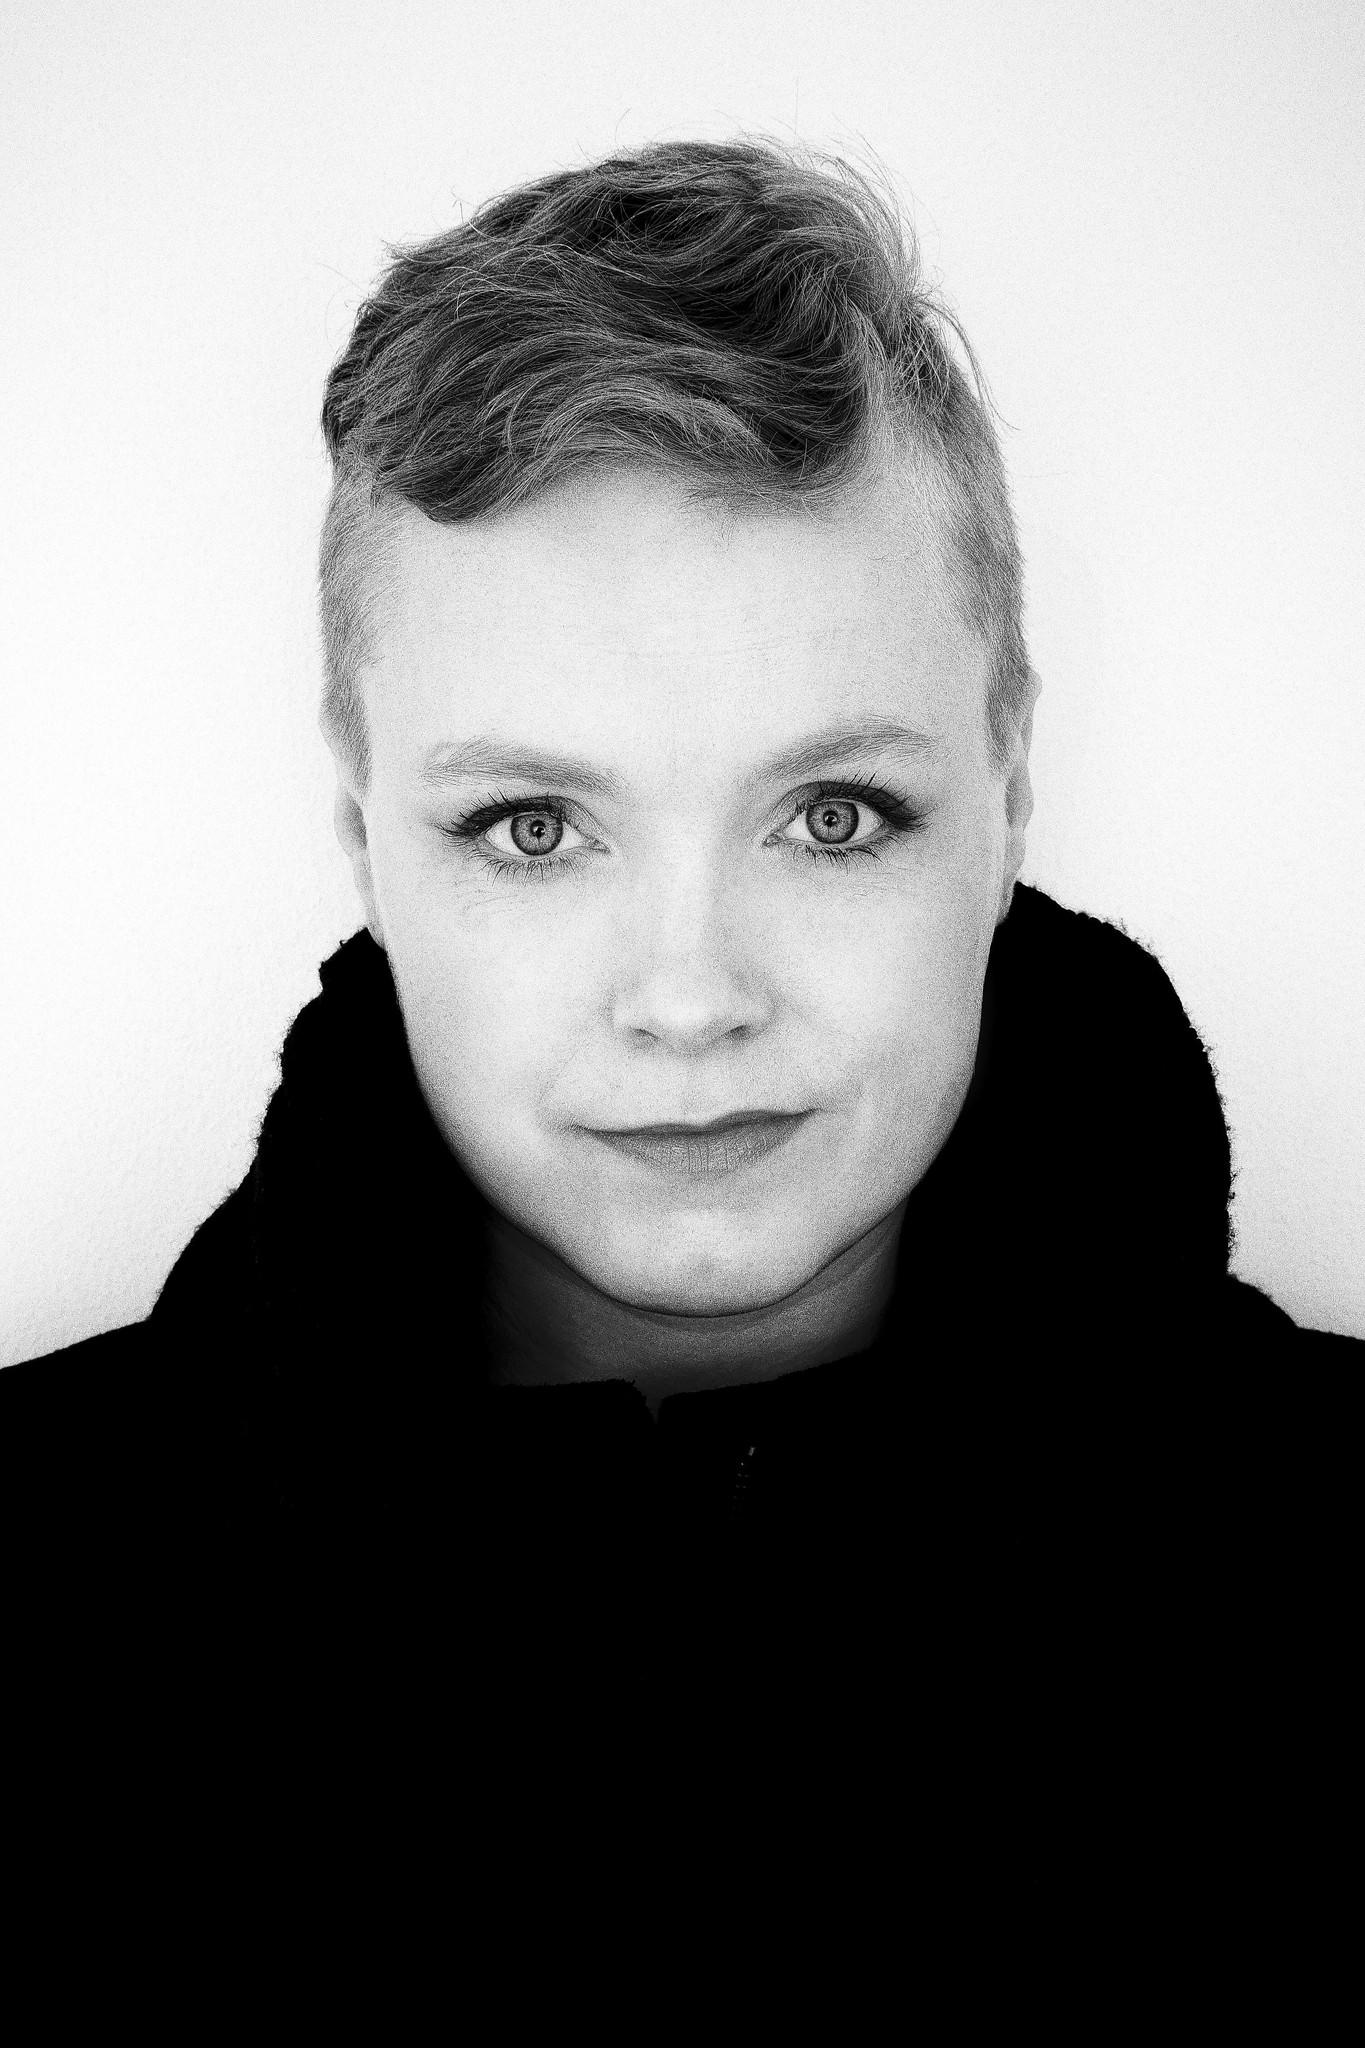 Singer-songwriter Ane Brun.